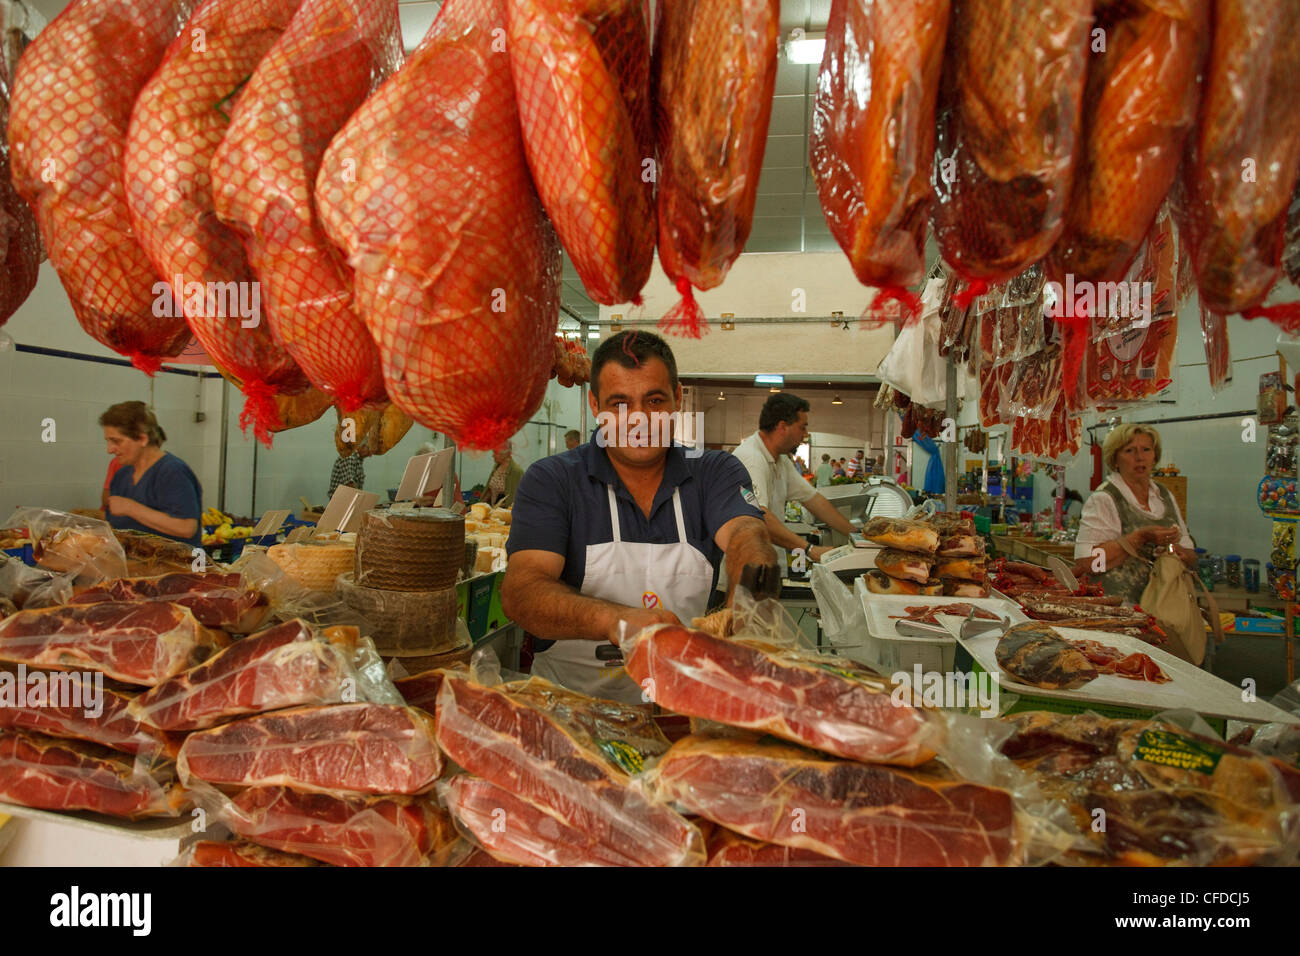 Butchers stand, weekly market, Arta, town, Mallorca, Balearic Islands, Spain, Europe - Stock Image